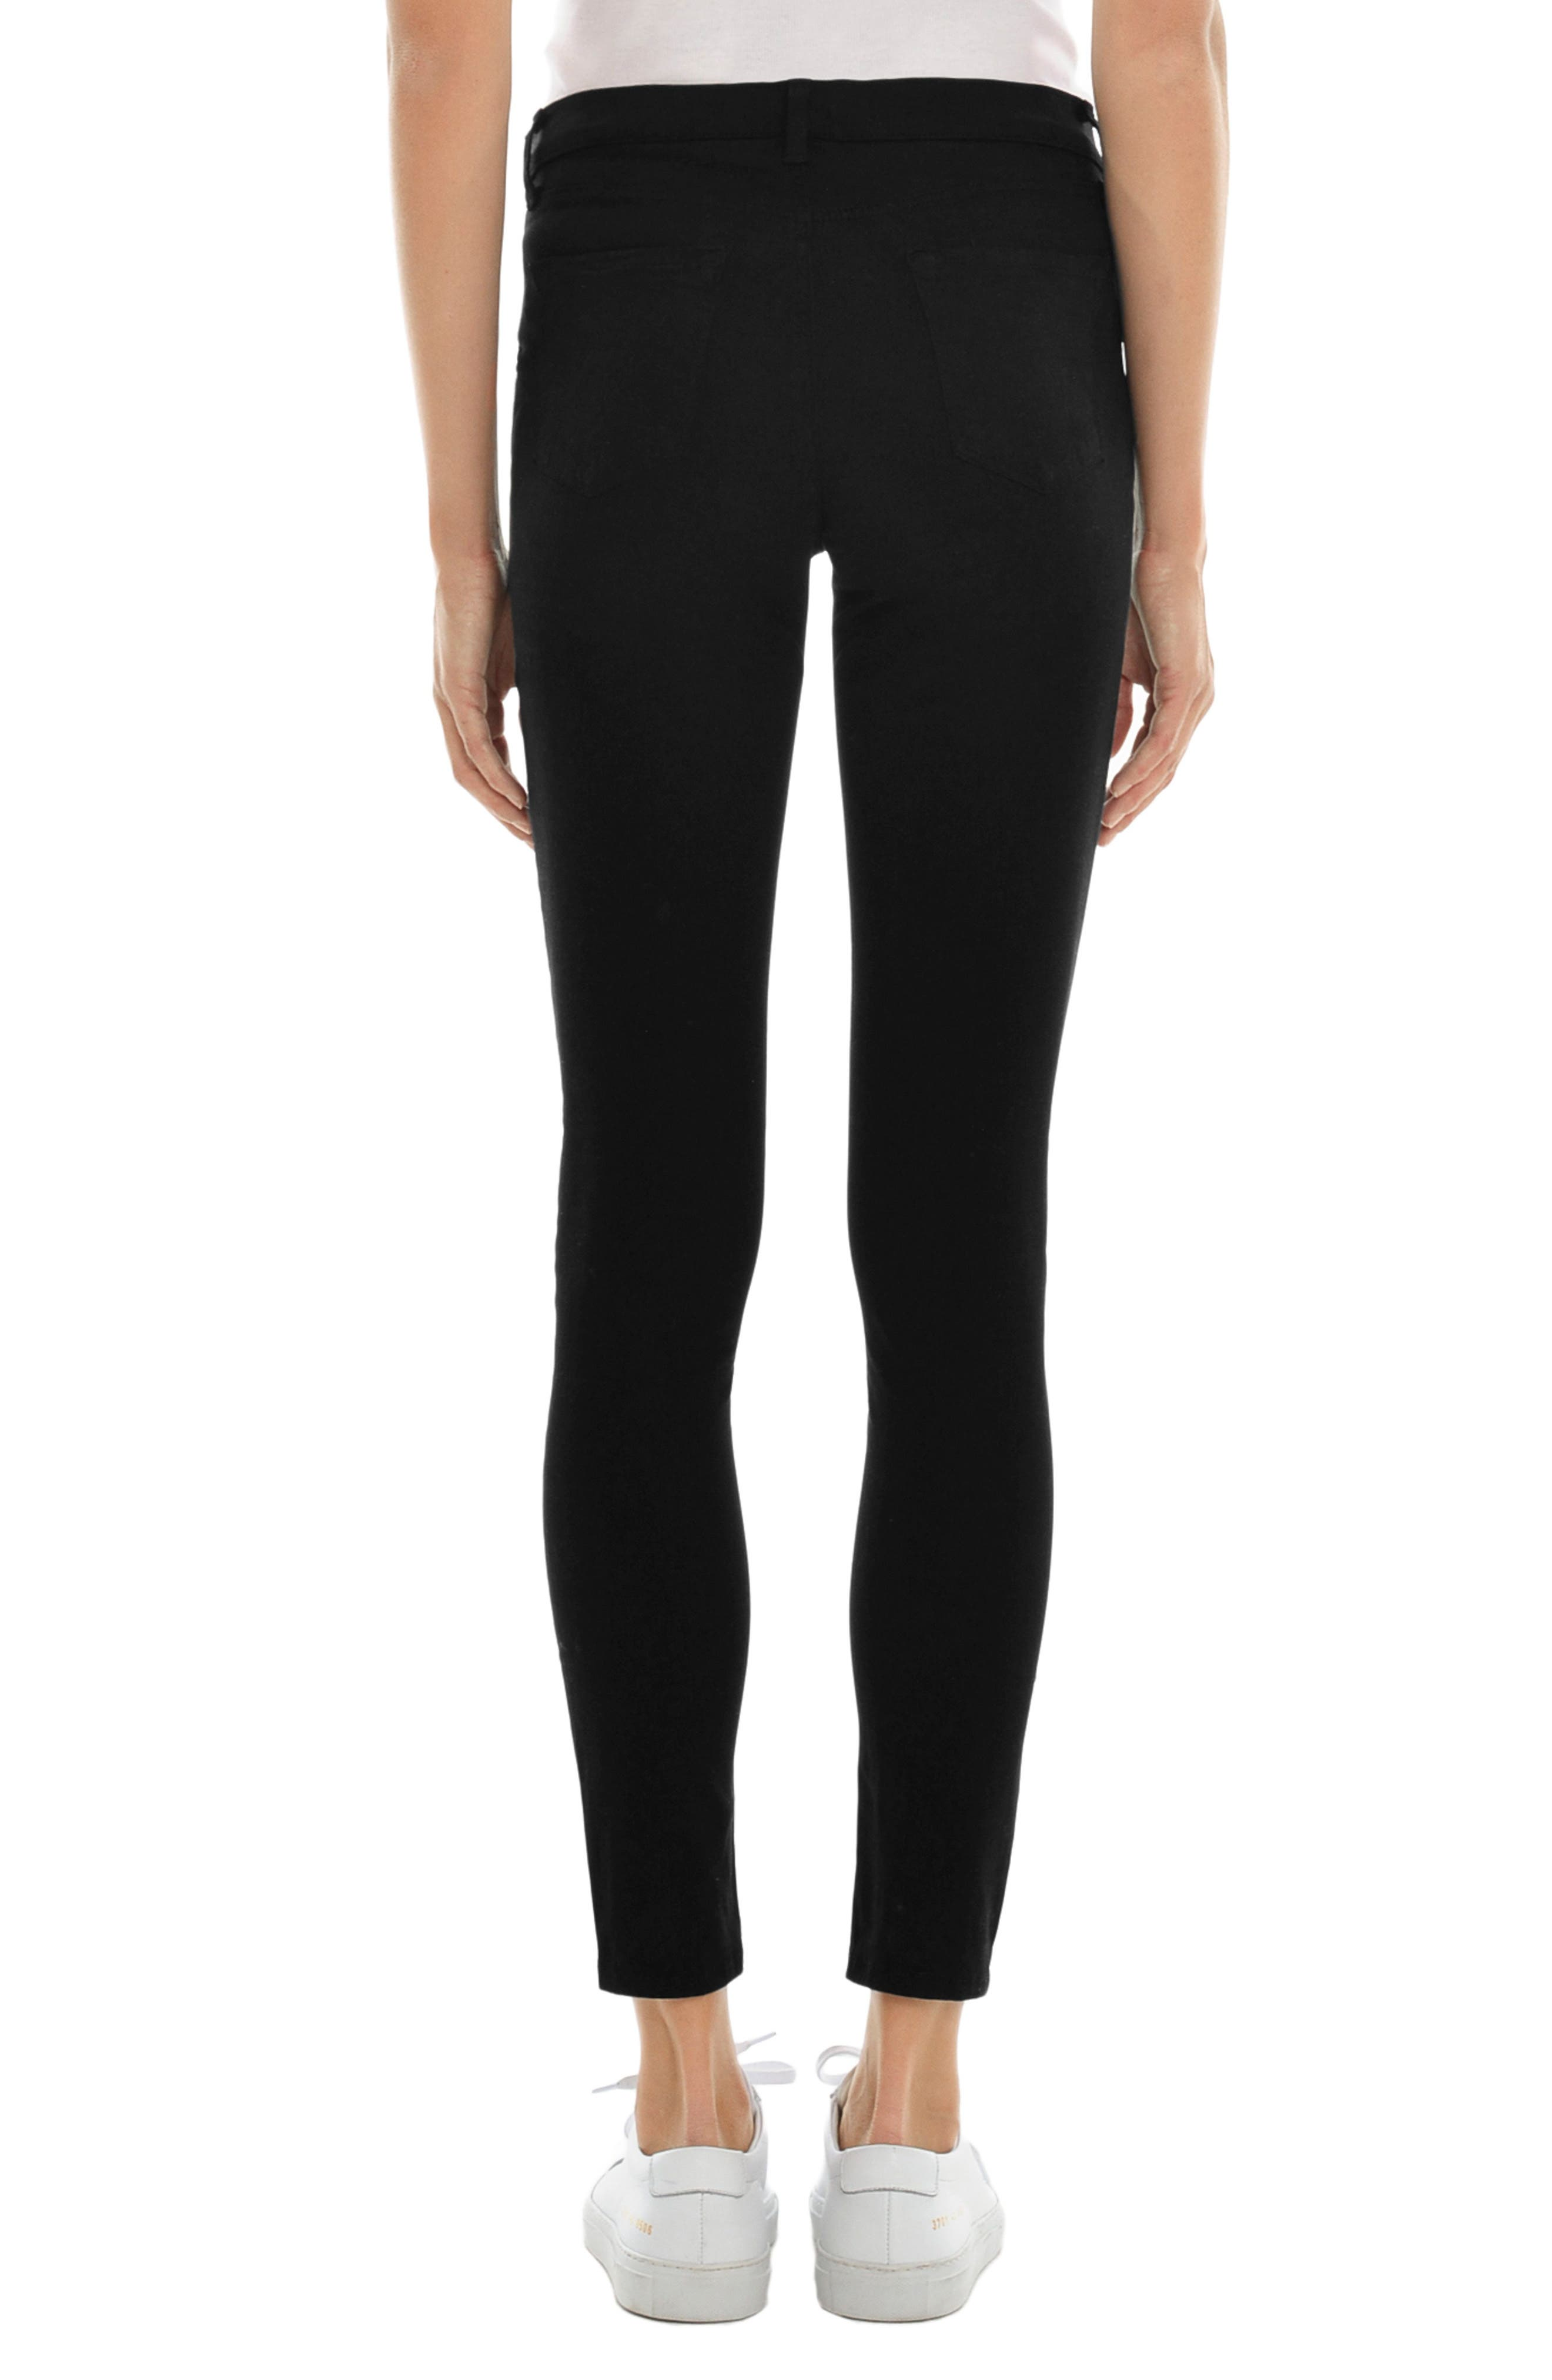 Mama J Luxe Sateen Maternity Skinny Jeans,                             Alternate thumbnail 2, color,                             Black